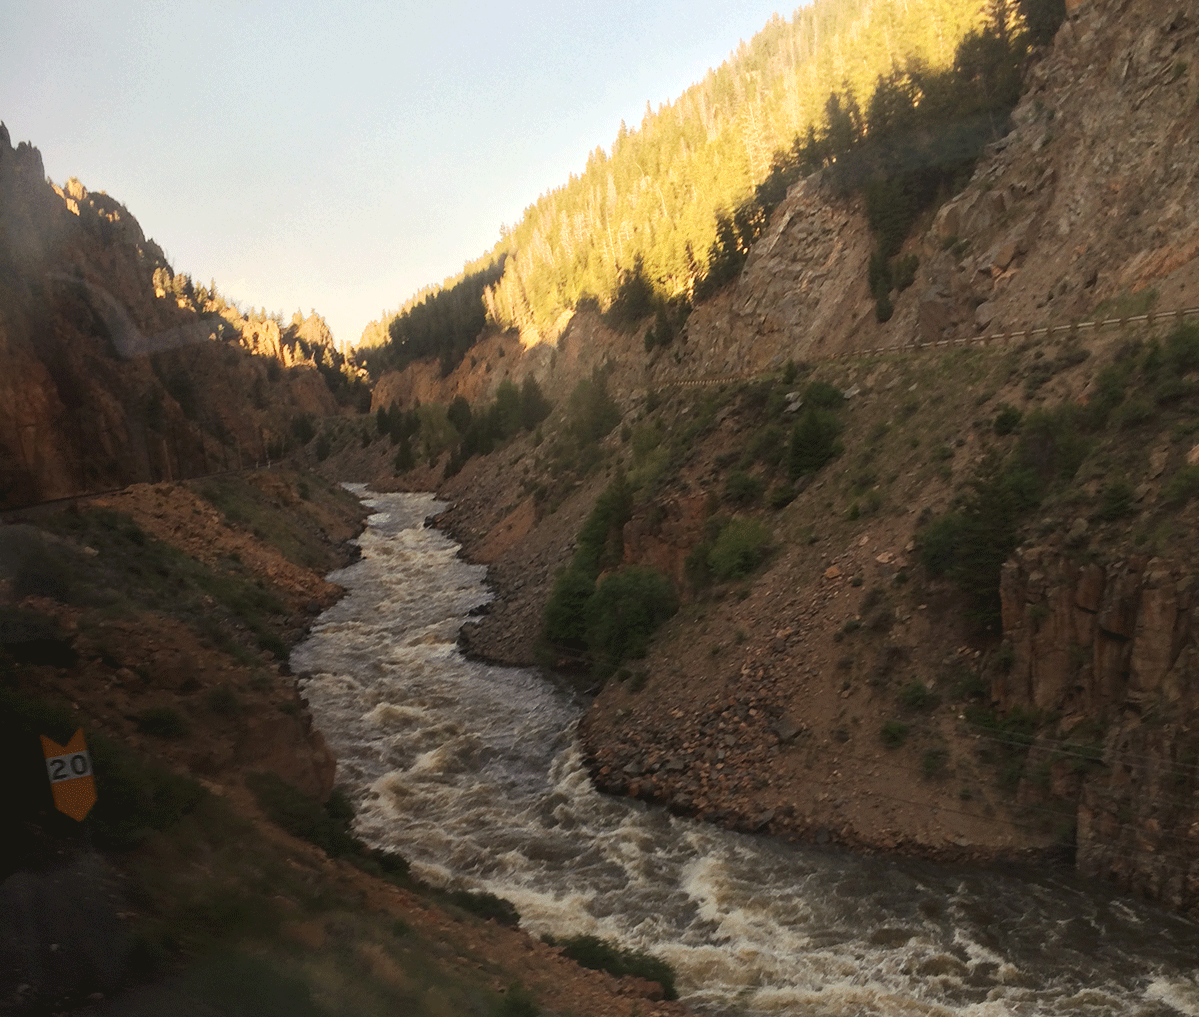 View of Colorado looking out Amtrak train